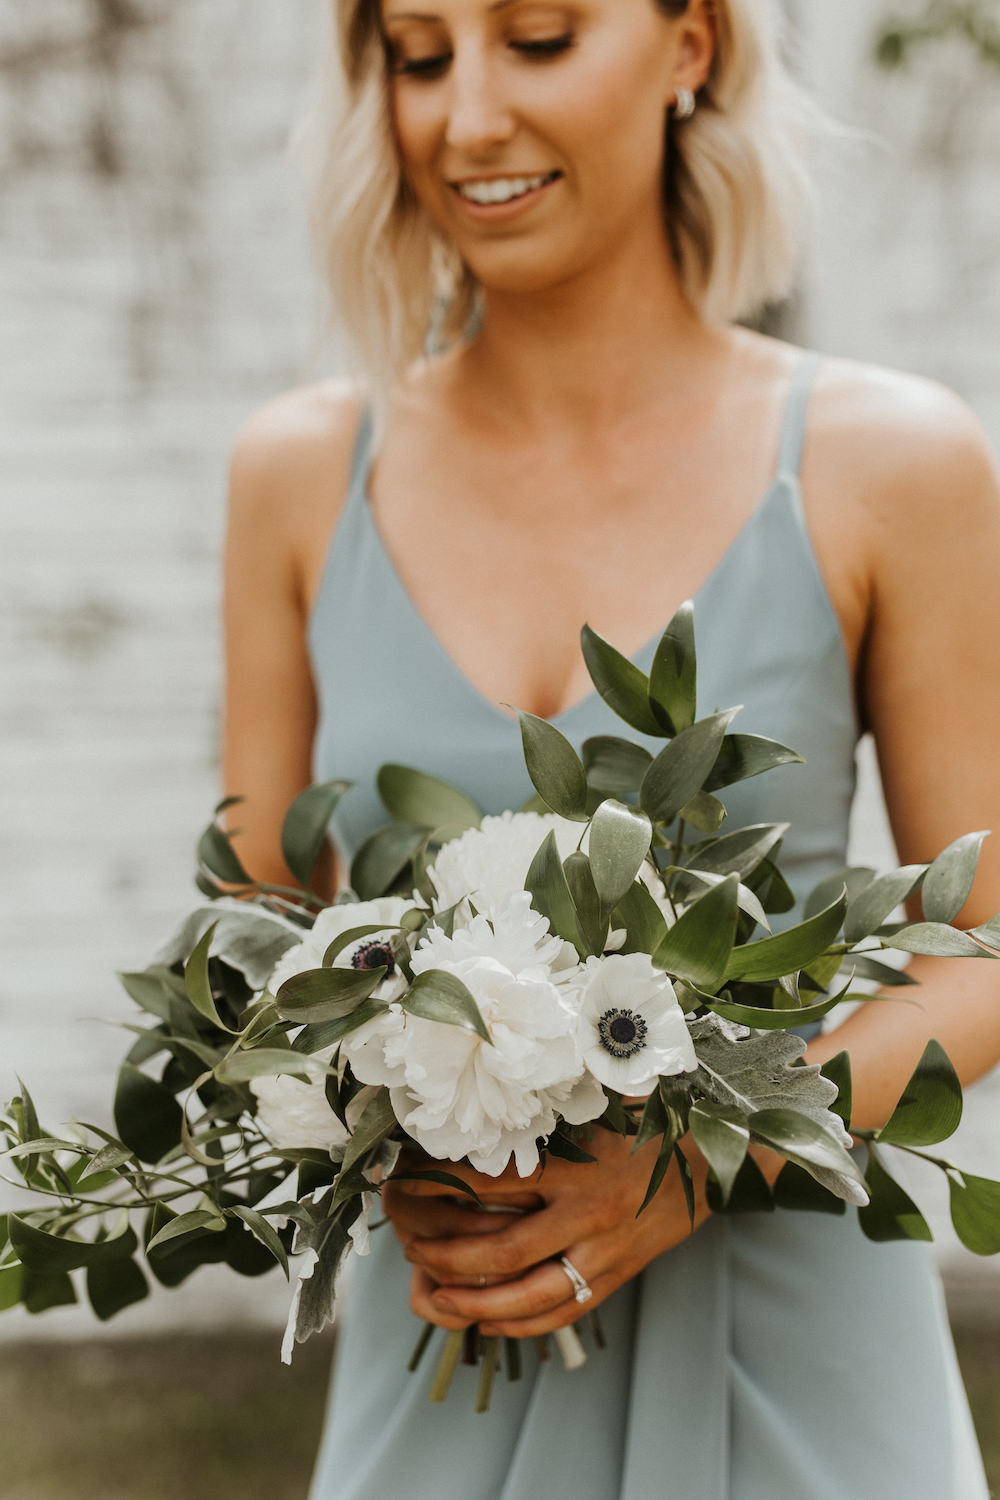 Mint Bridesmaid Dress with White Bouquet - Wedding Florists in Winnipeg